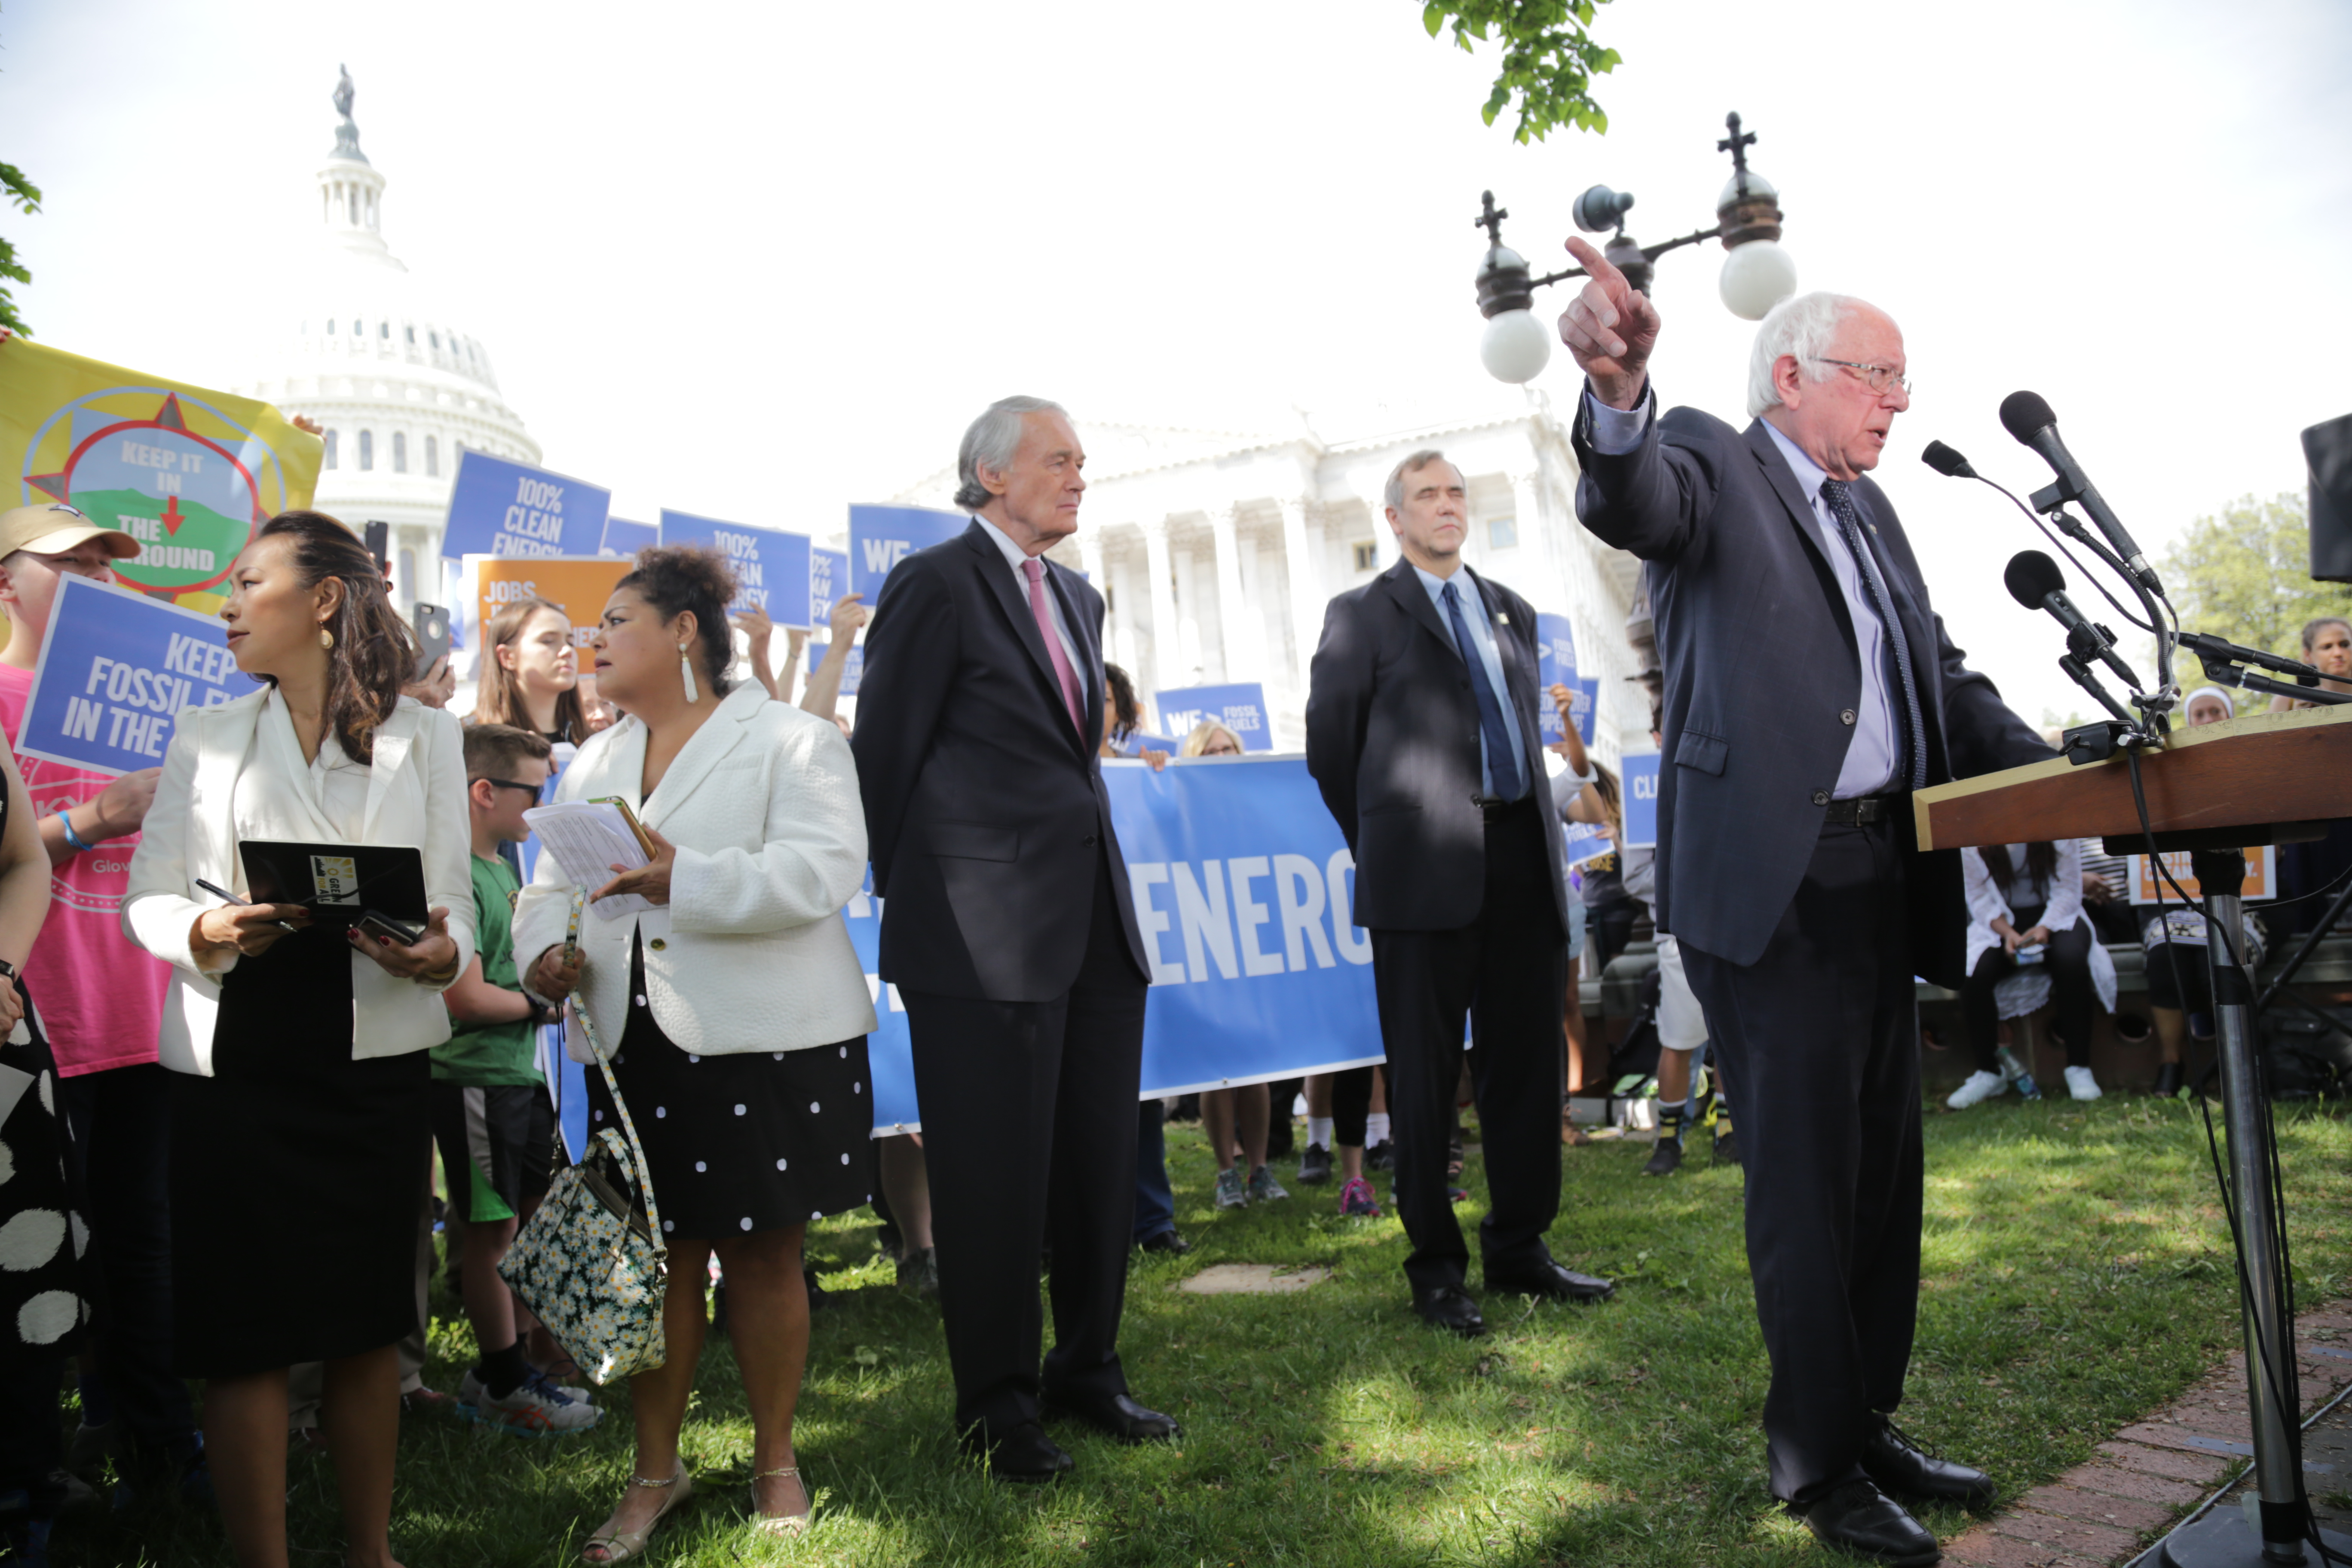 Sen. Bernie Sanders (I-VT) speaks as Sens. Ed Markey (D-MA) and Jeff Merkley (D-OR) listen during a press conference to introduce a bill to transition to a 100 percent renewable economy by 2050. (Photo by John Light)